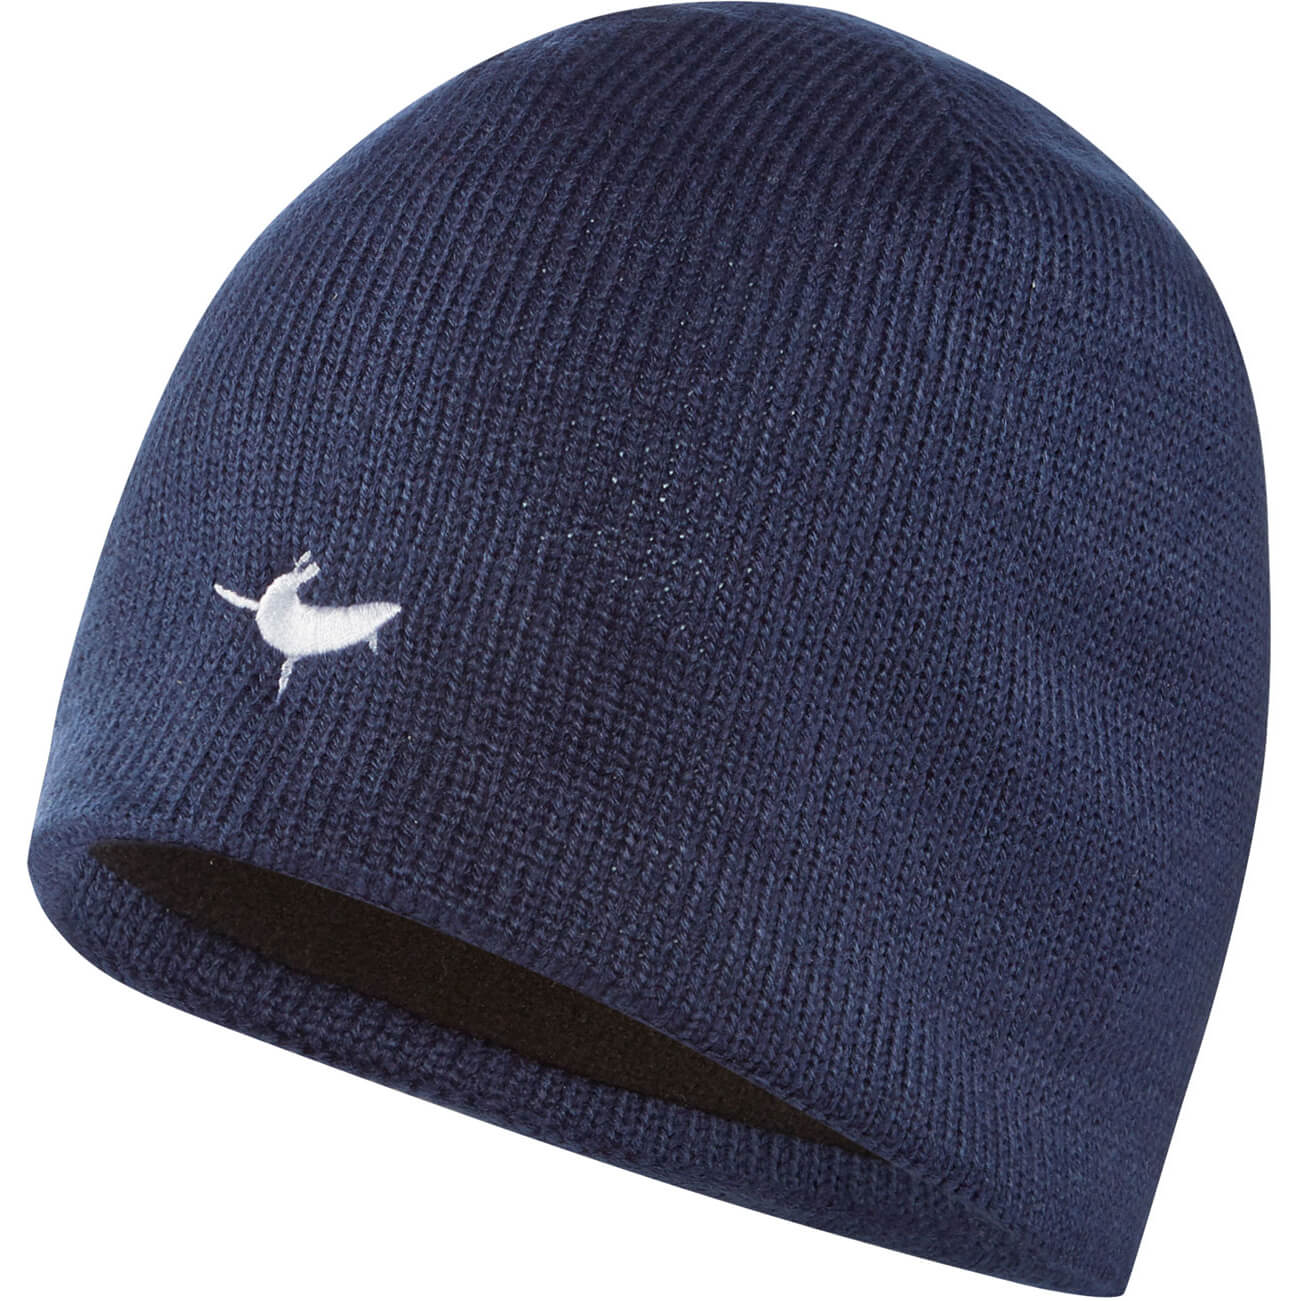 Sealskinz Waterproof Beanie Hat - Navy Blue